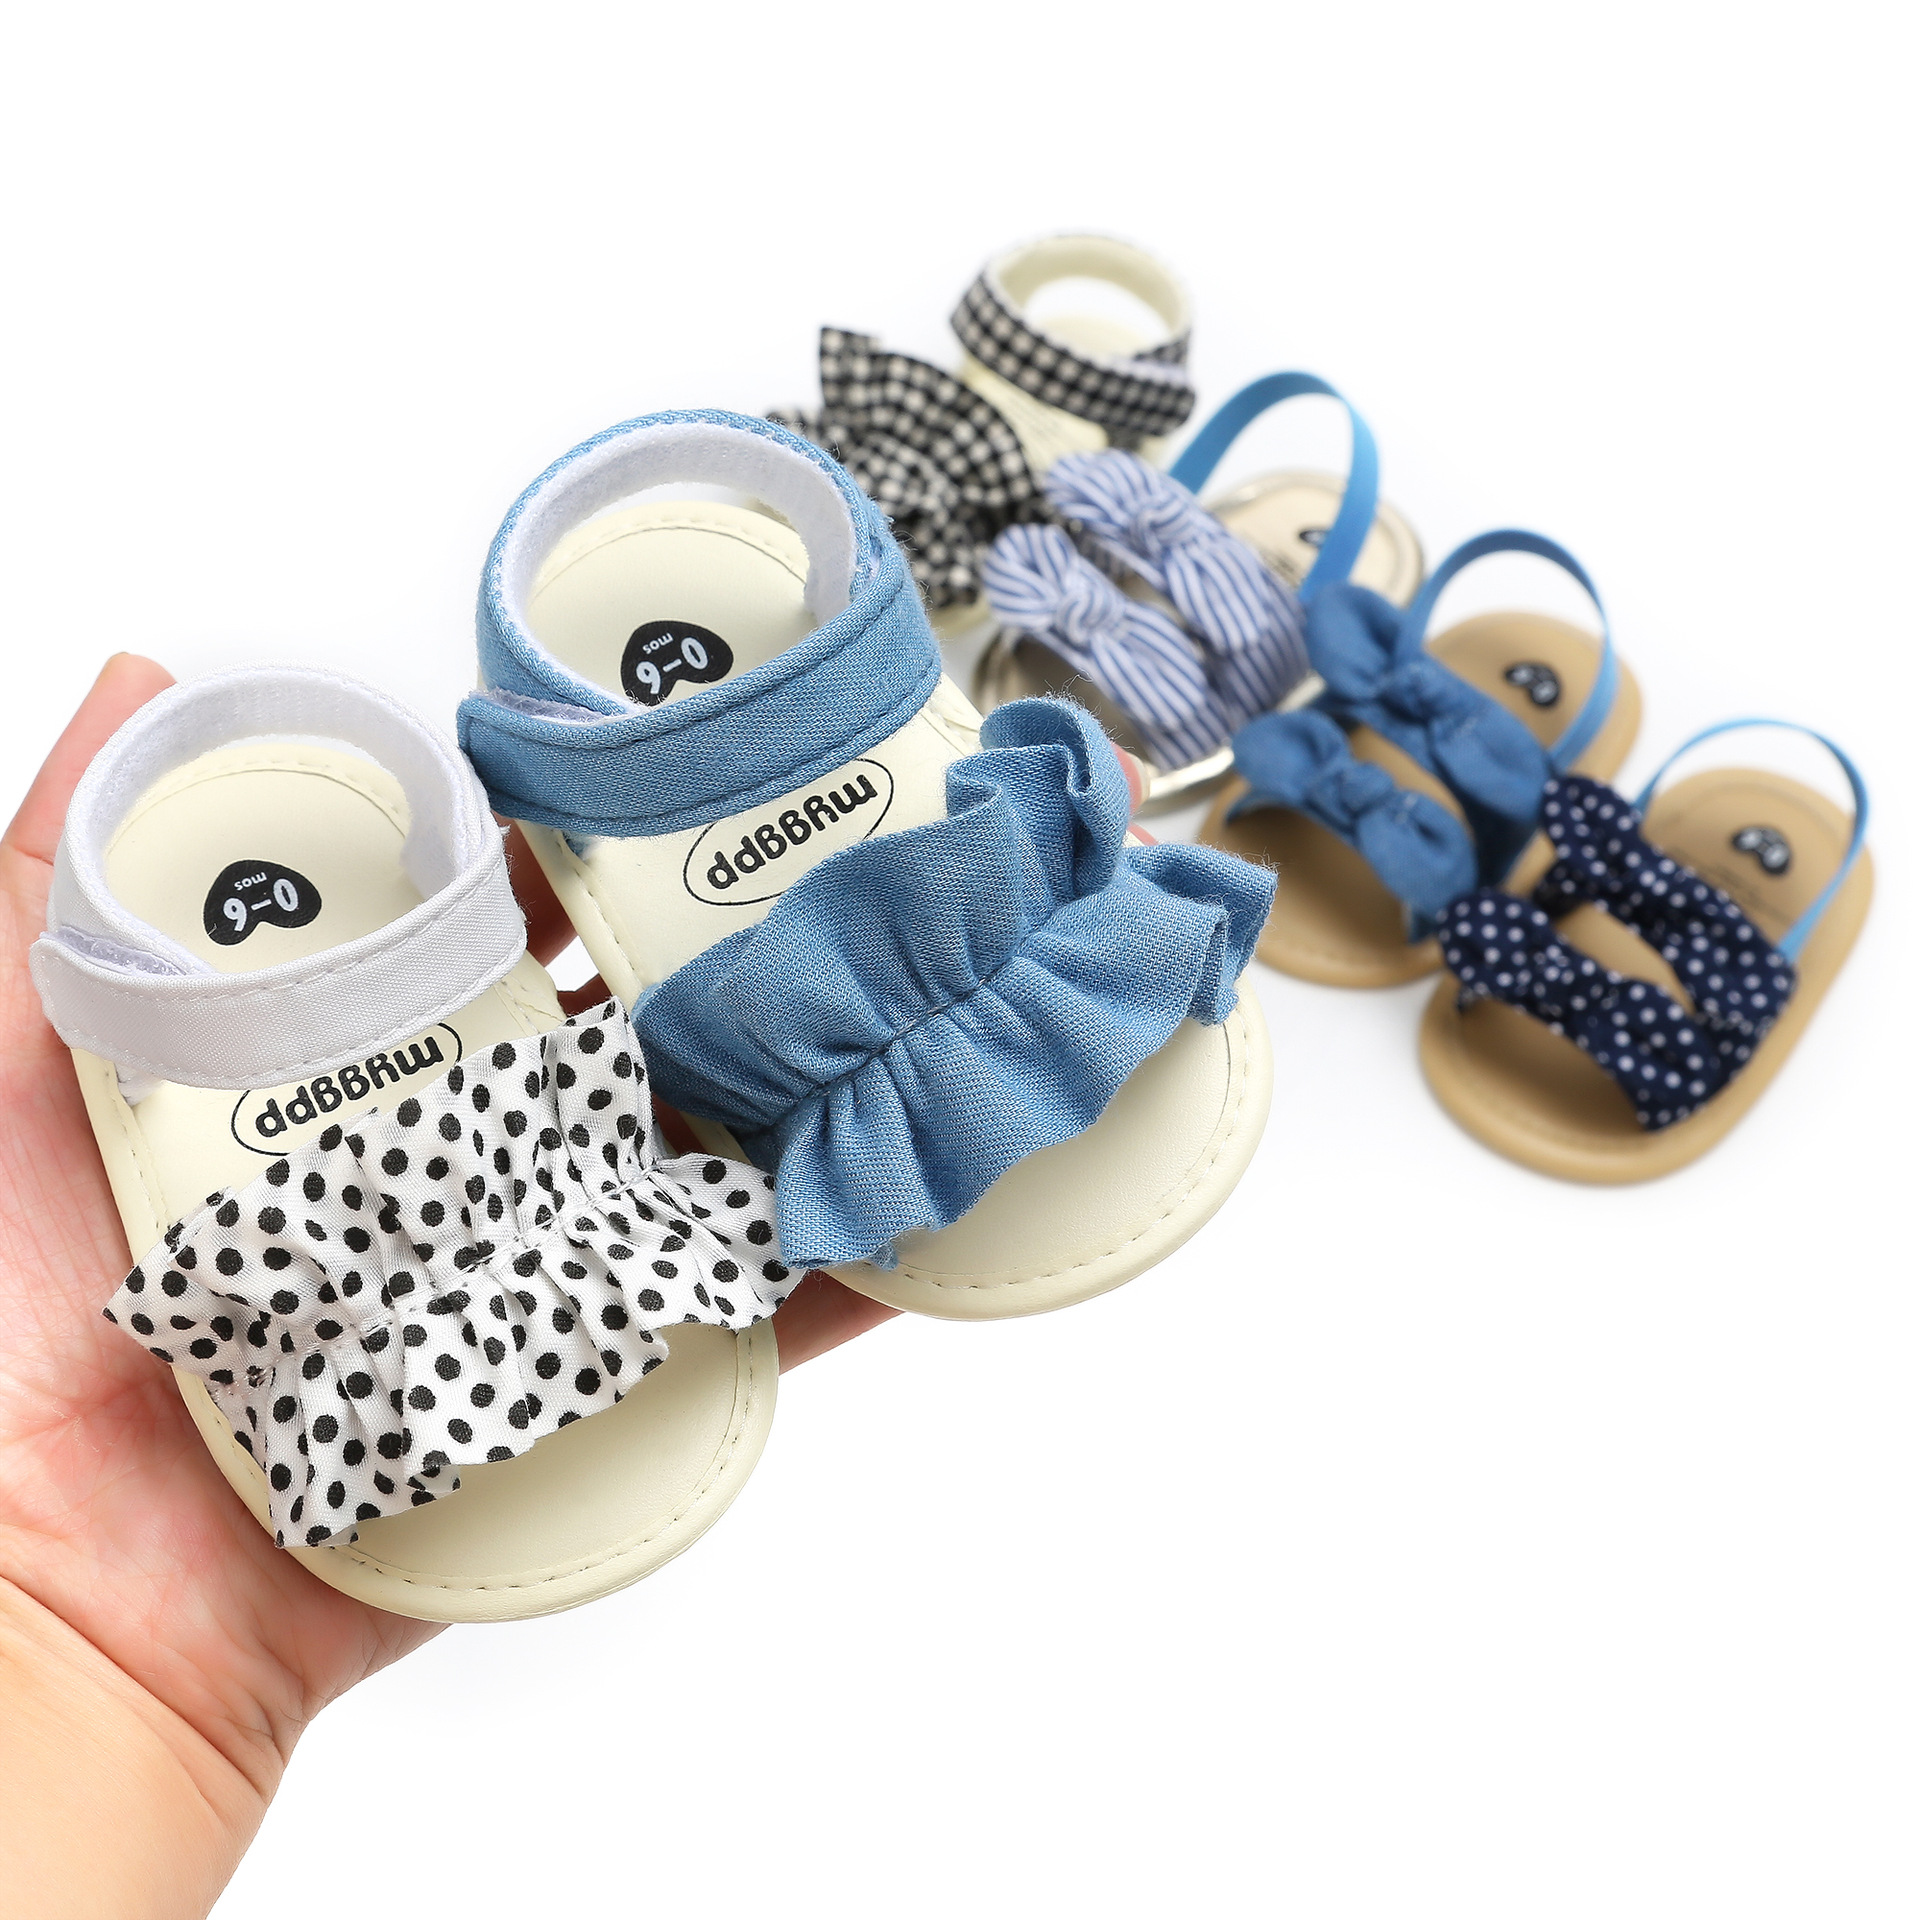 Fashion Baby Shoes Summer Autumn Cute Boy First Walkers Infant Baby Girls Shoes Soft Sole Prewalker Toddler Shoes Winter 2020